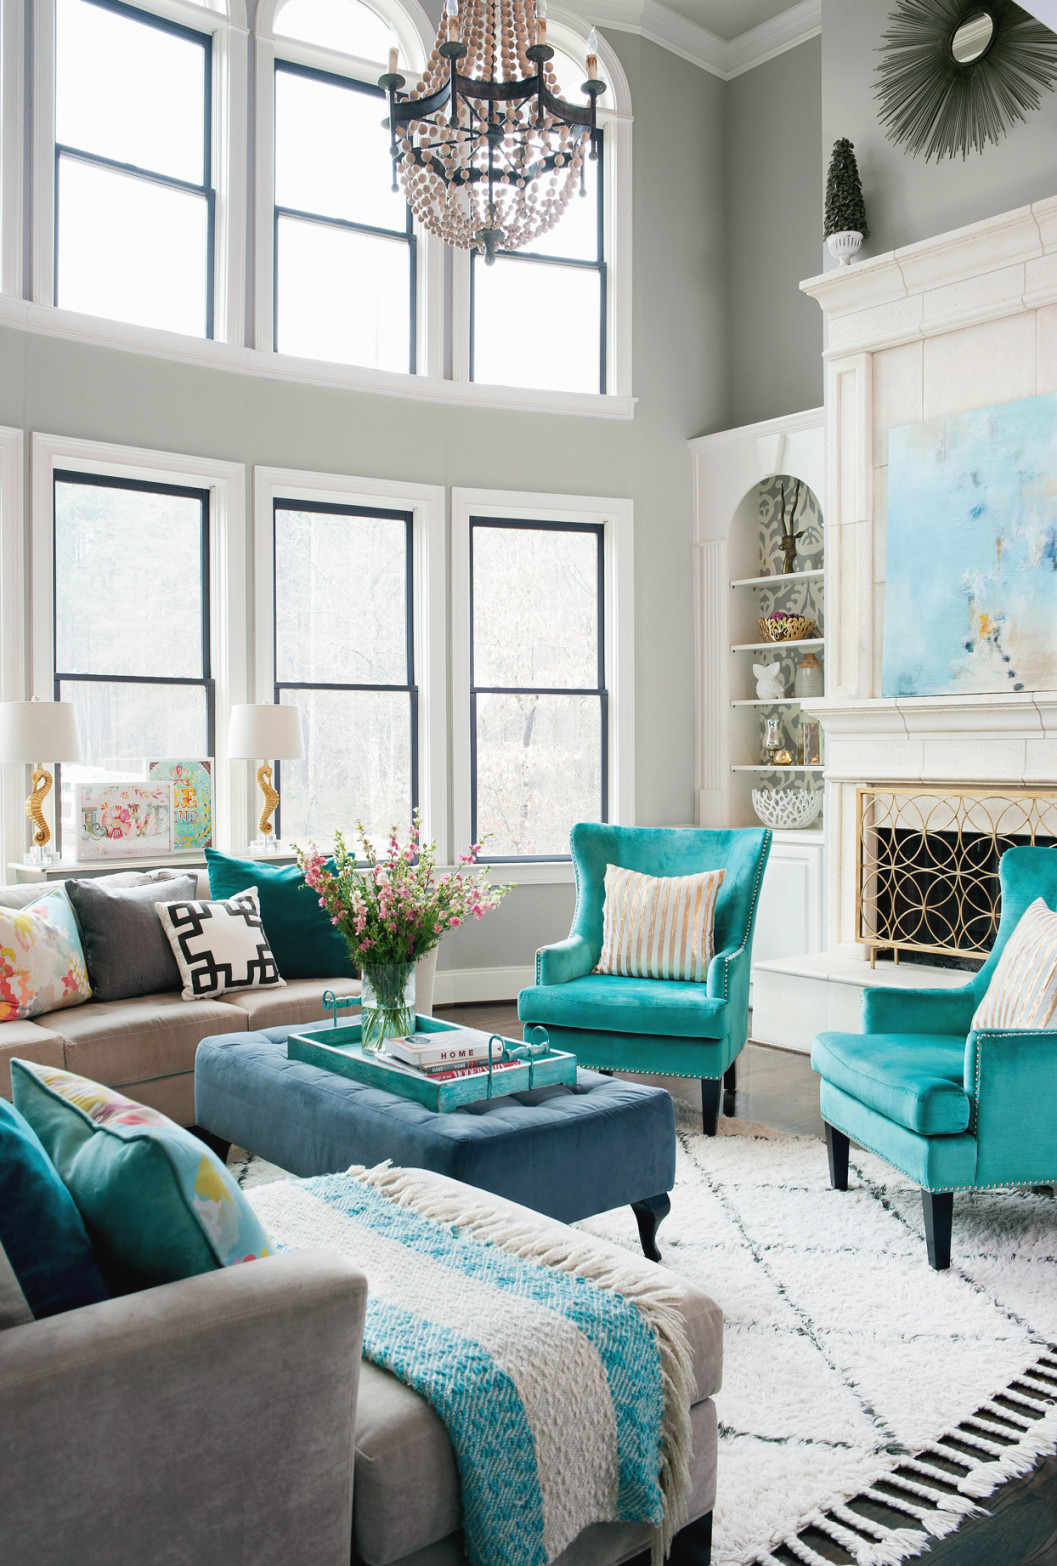 33 Living Room Color Schemes For A Cozy, Livable Space intended for Beautiful Gallery Gray And Teal Living Room